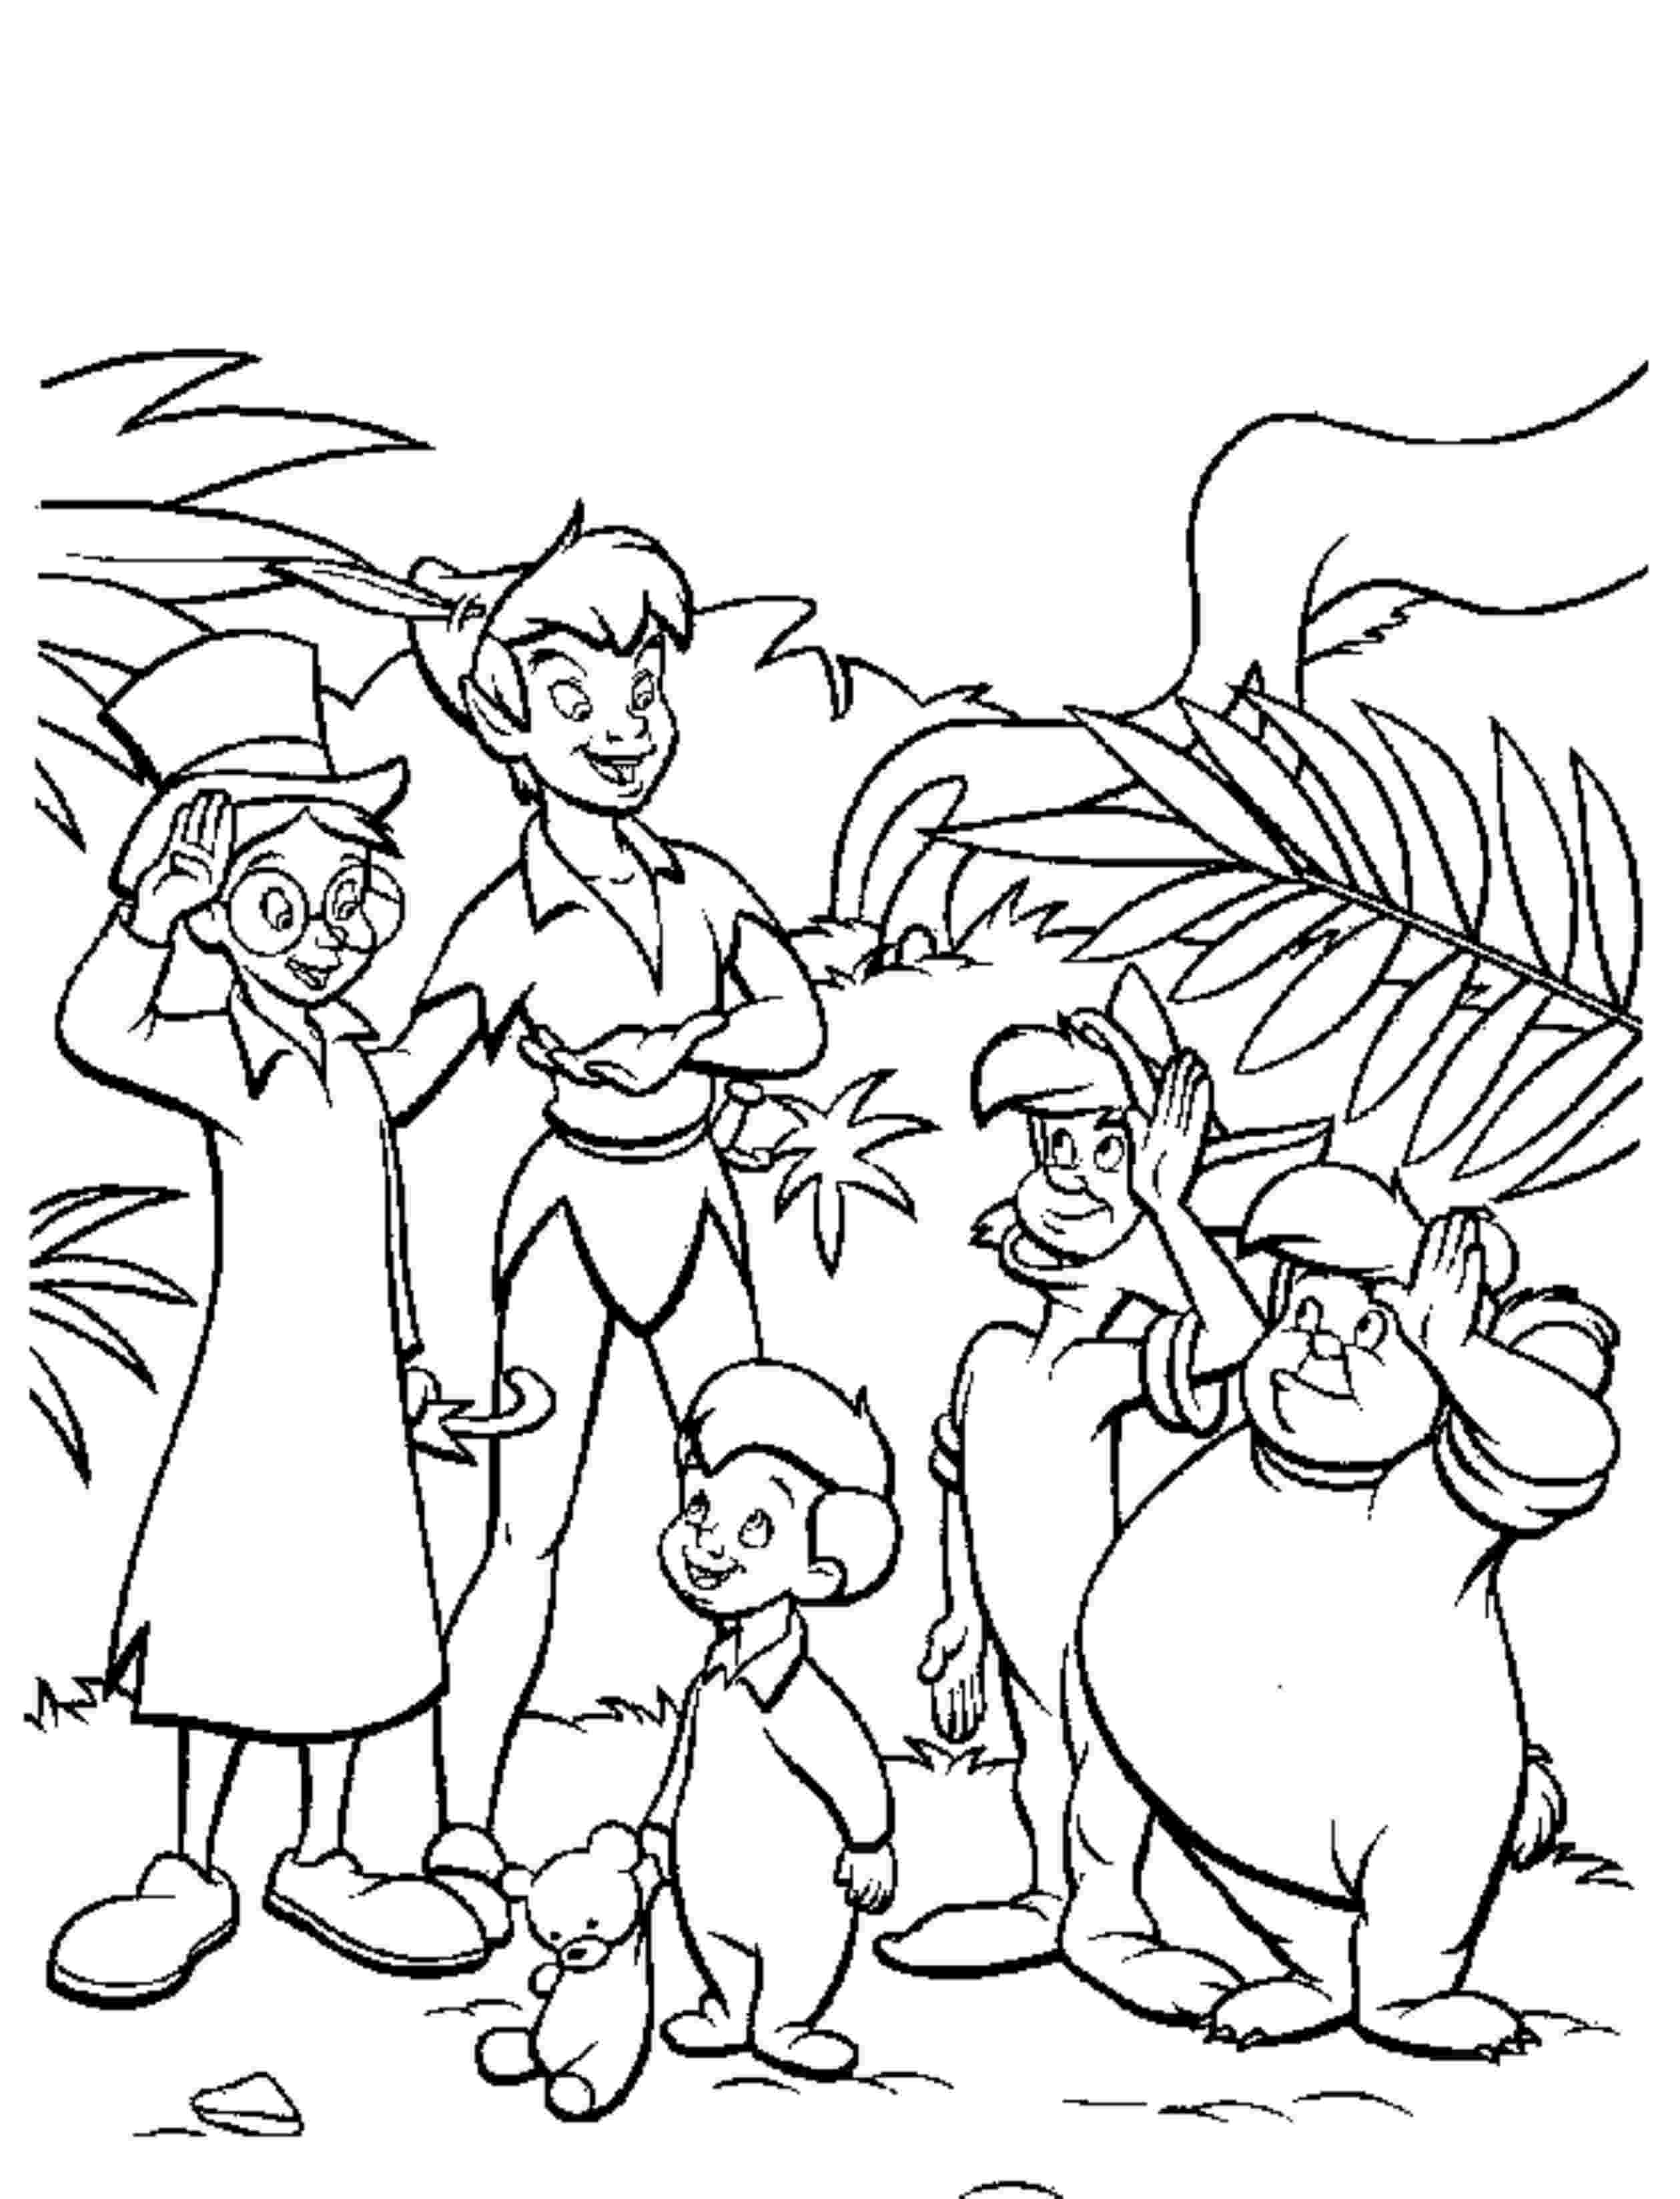 peter pan free coloring pages - photo#27